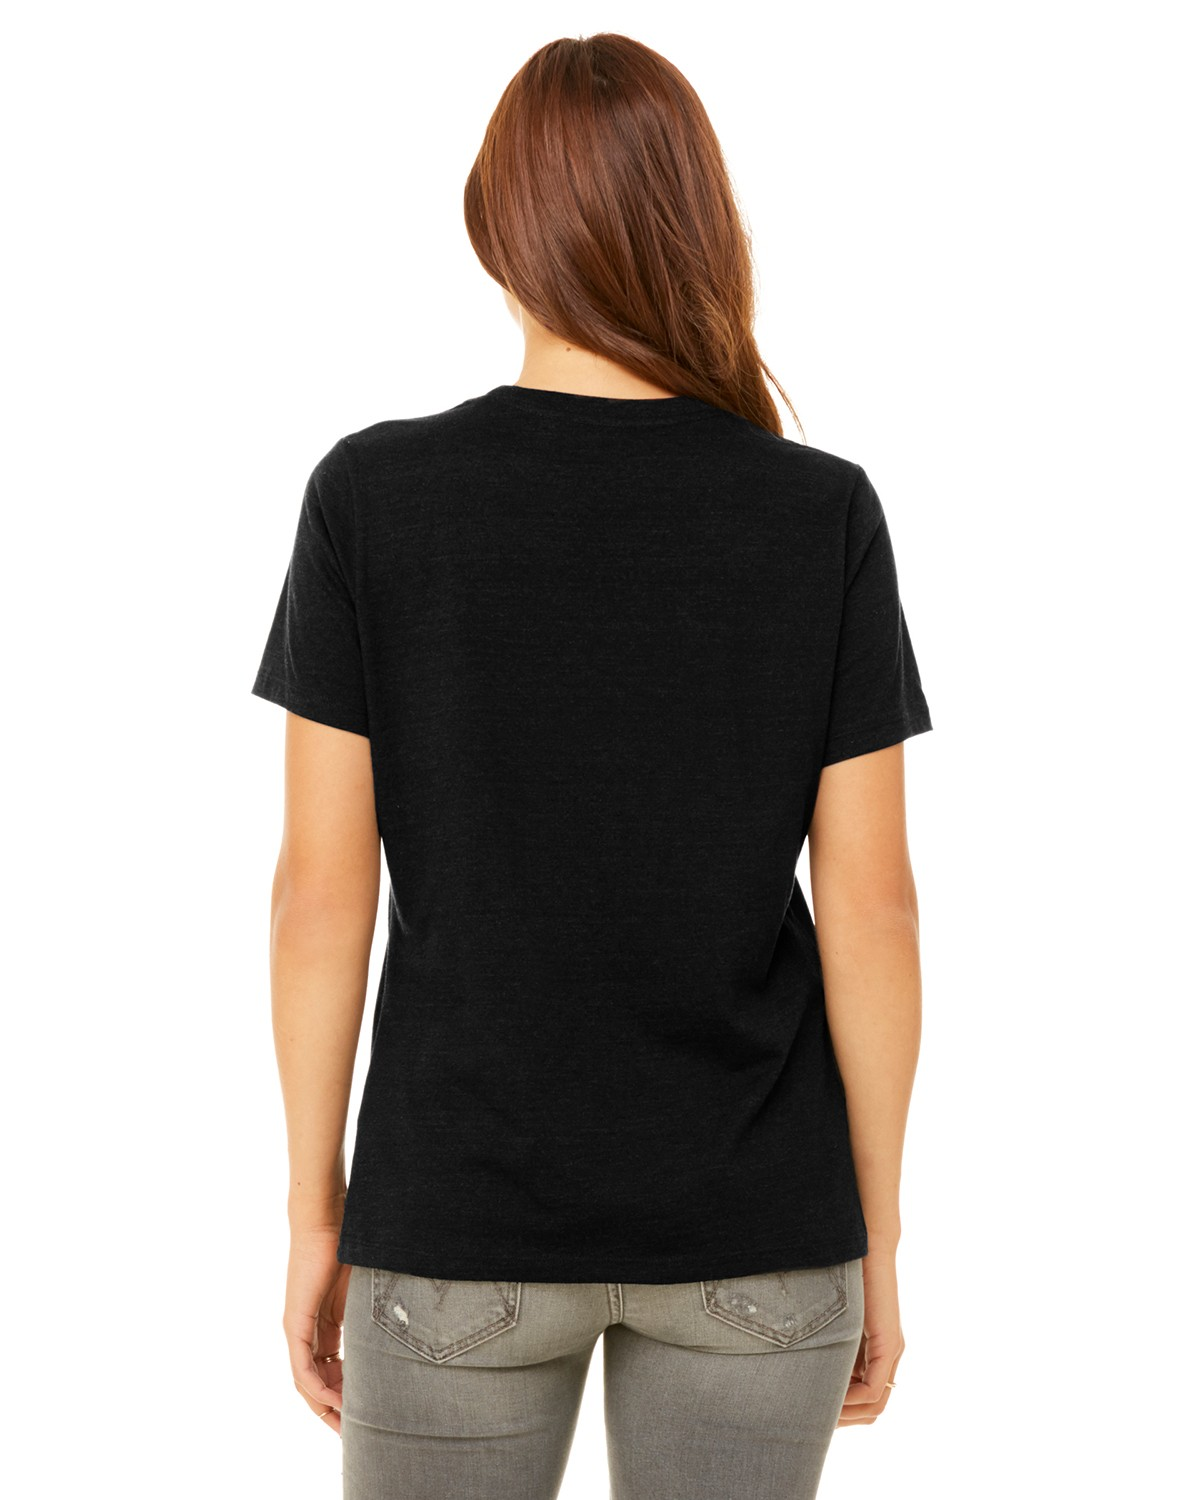 B6400 Bella + Canvas BLACK HEATHER